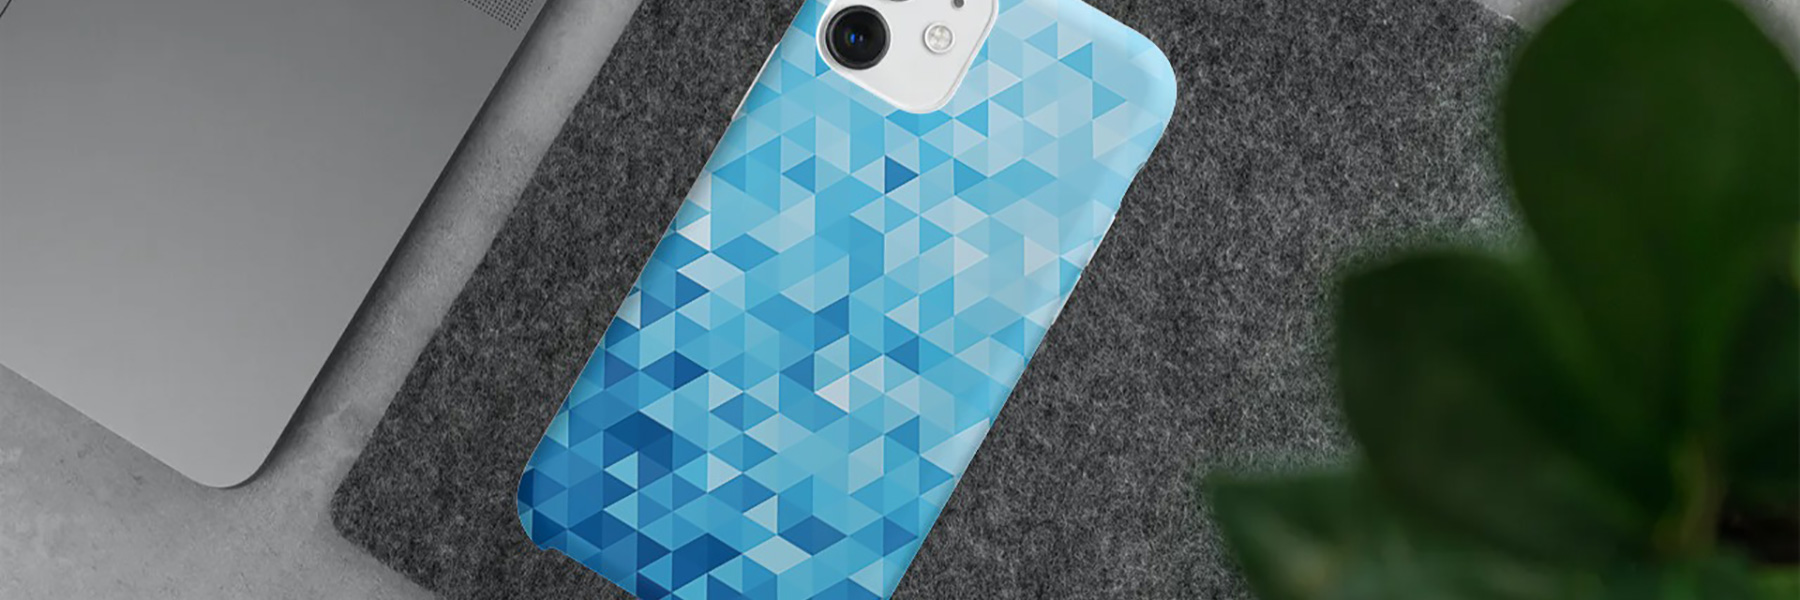 print-on-demand-cases_Large